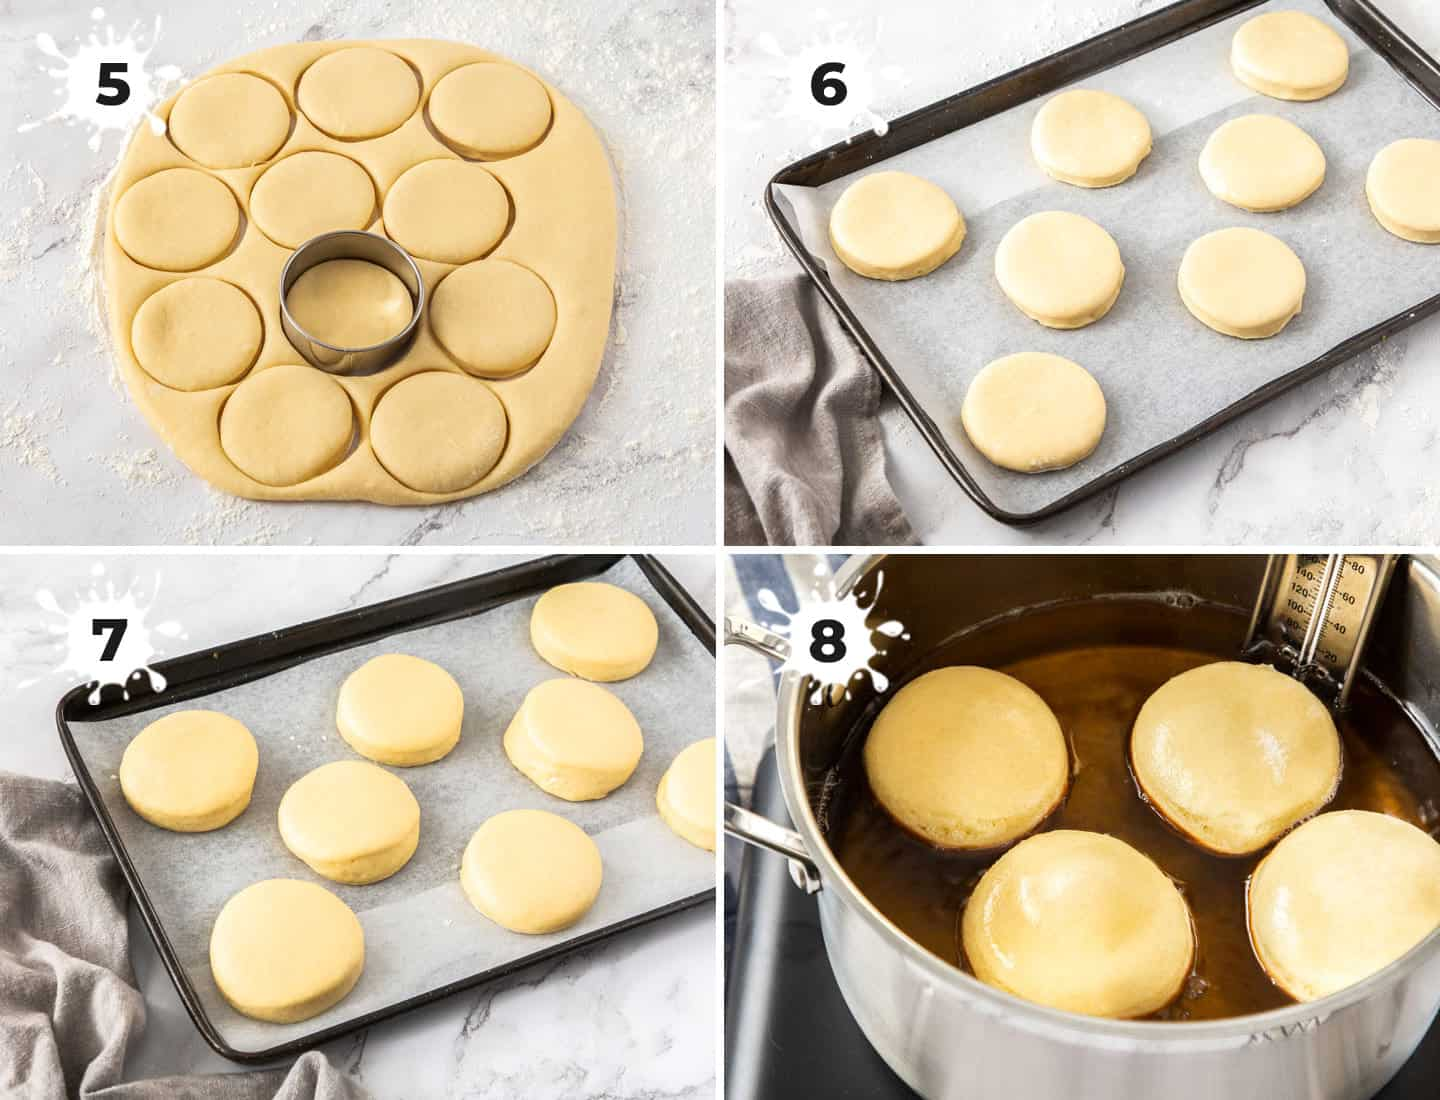 A collage of 4 images showing how to make and fry doughnuts.